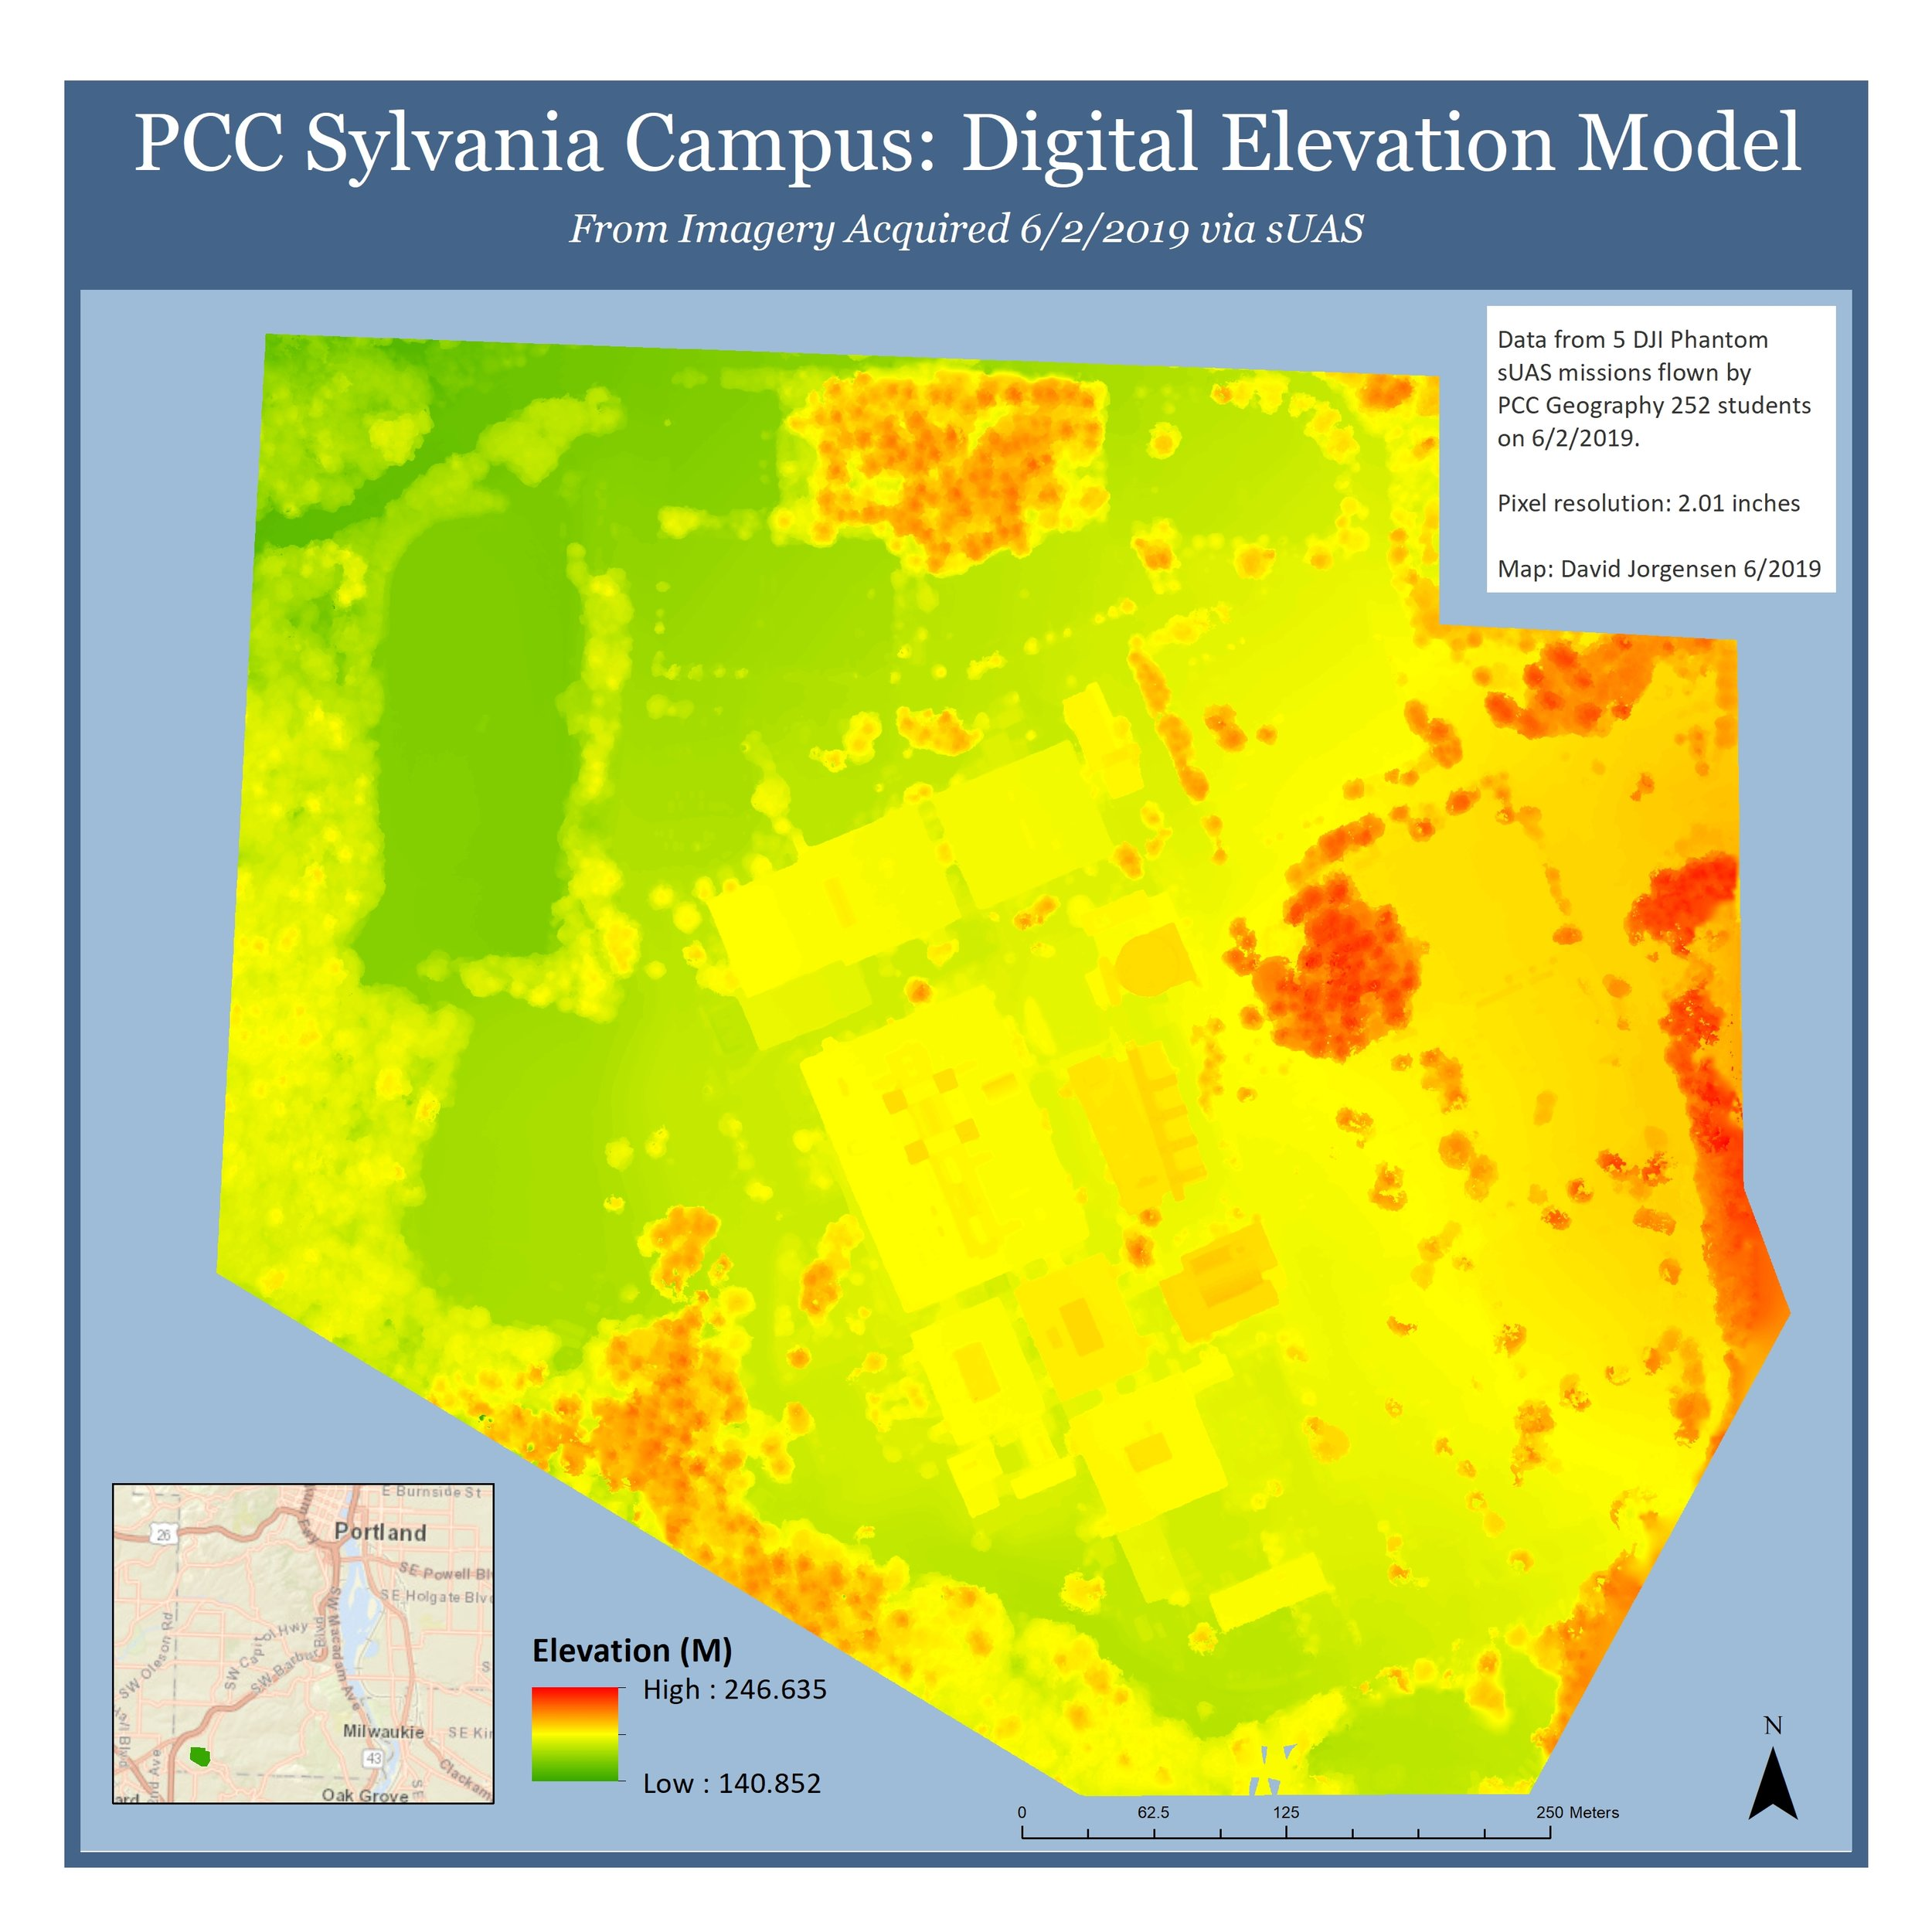 PCC Sylvania Digital Elevation Model - Planning and executing a multi-team drone flight operation and processing the acquired data to produce a highly accurate Digital Elevation Model of the PCC Sylvania Campus.